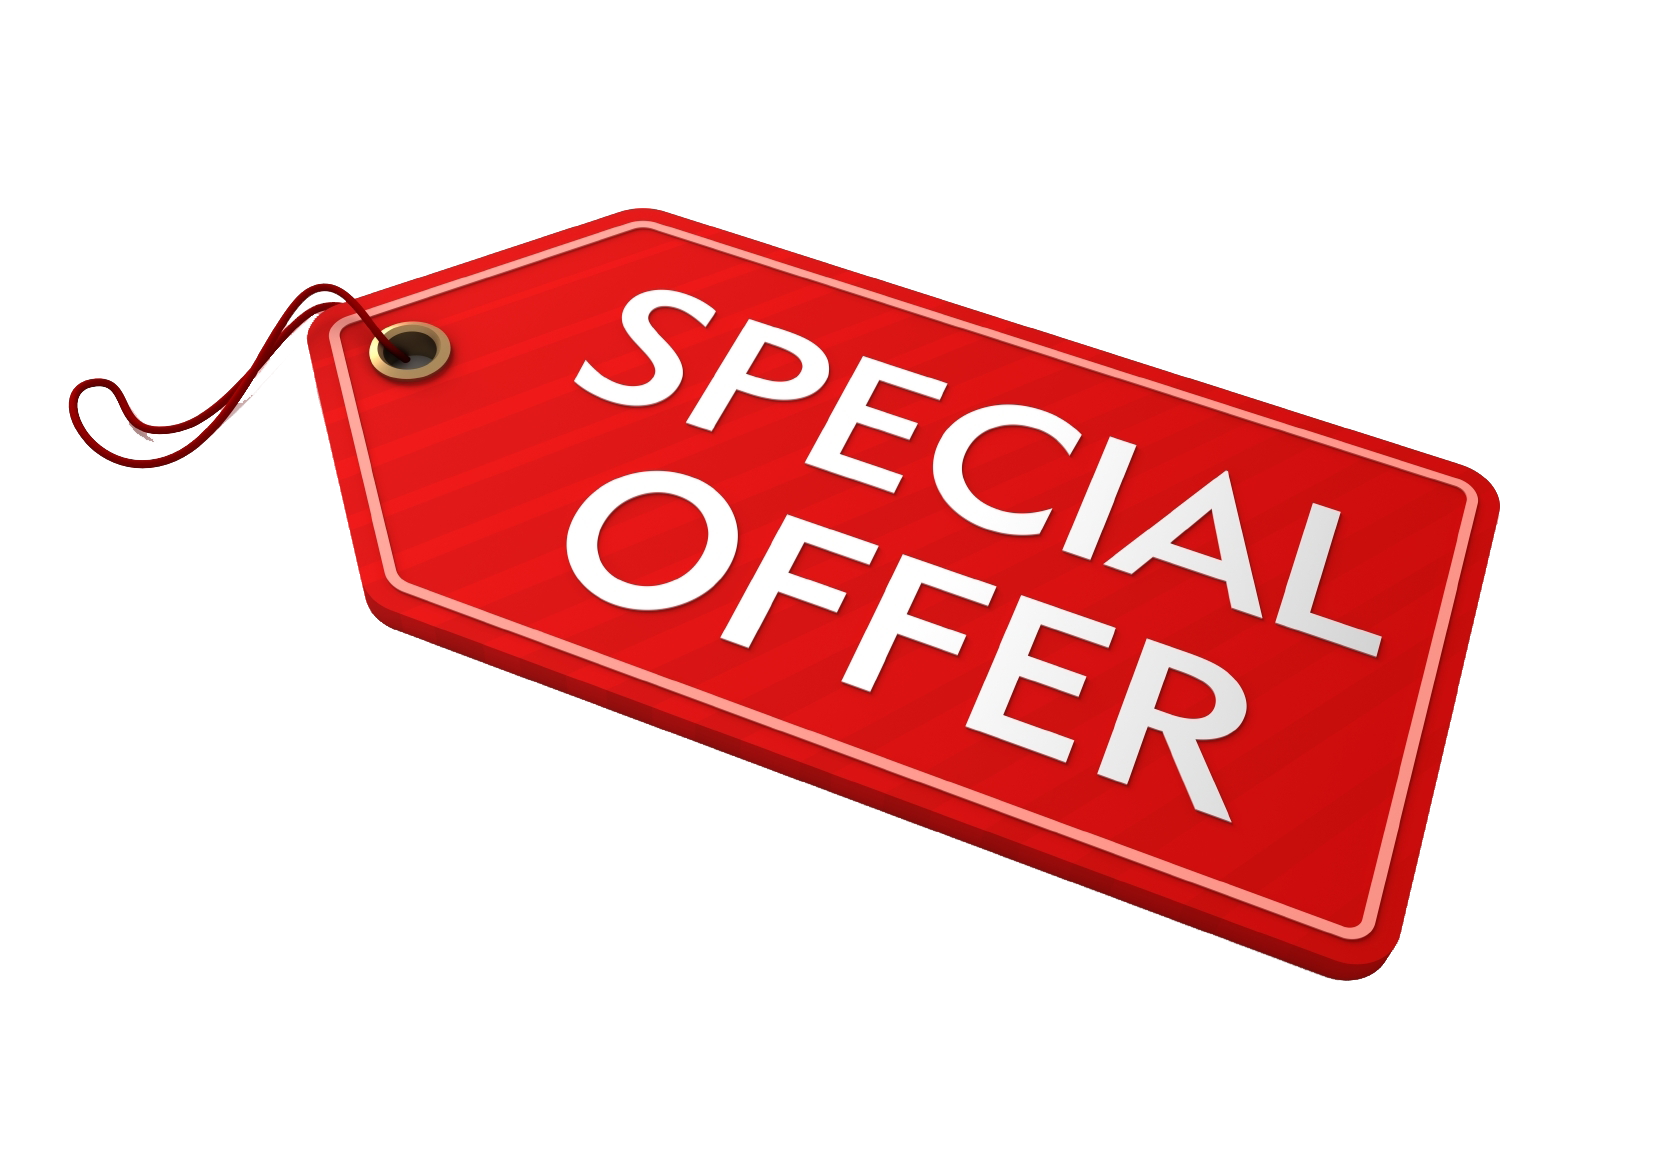 Special offer png transparent. Name clipart offering